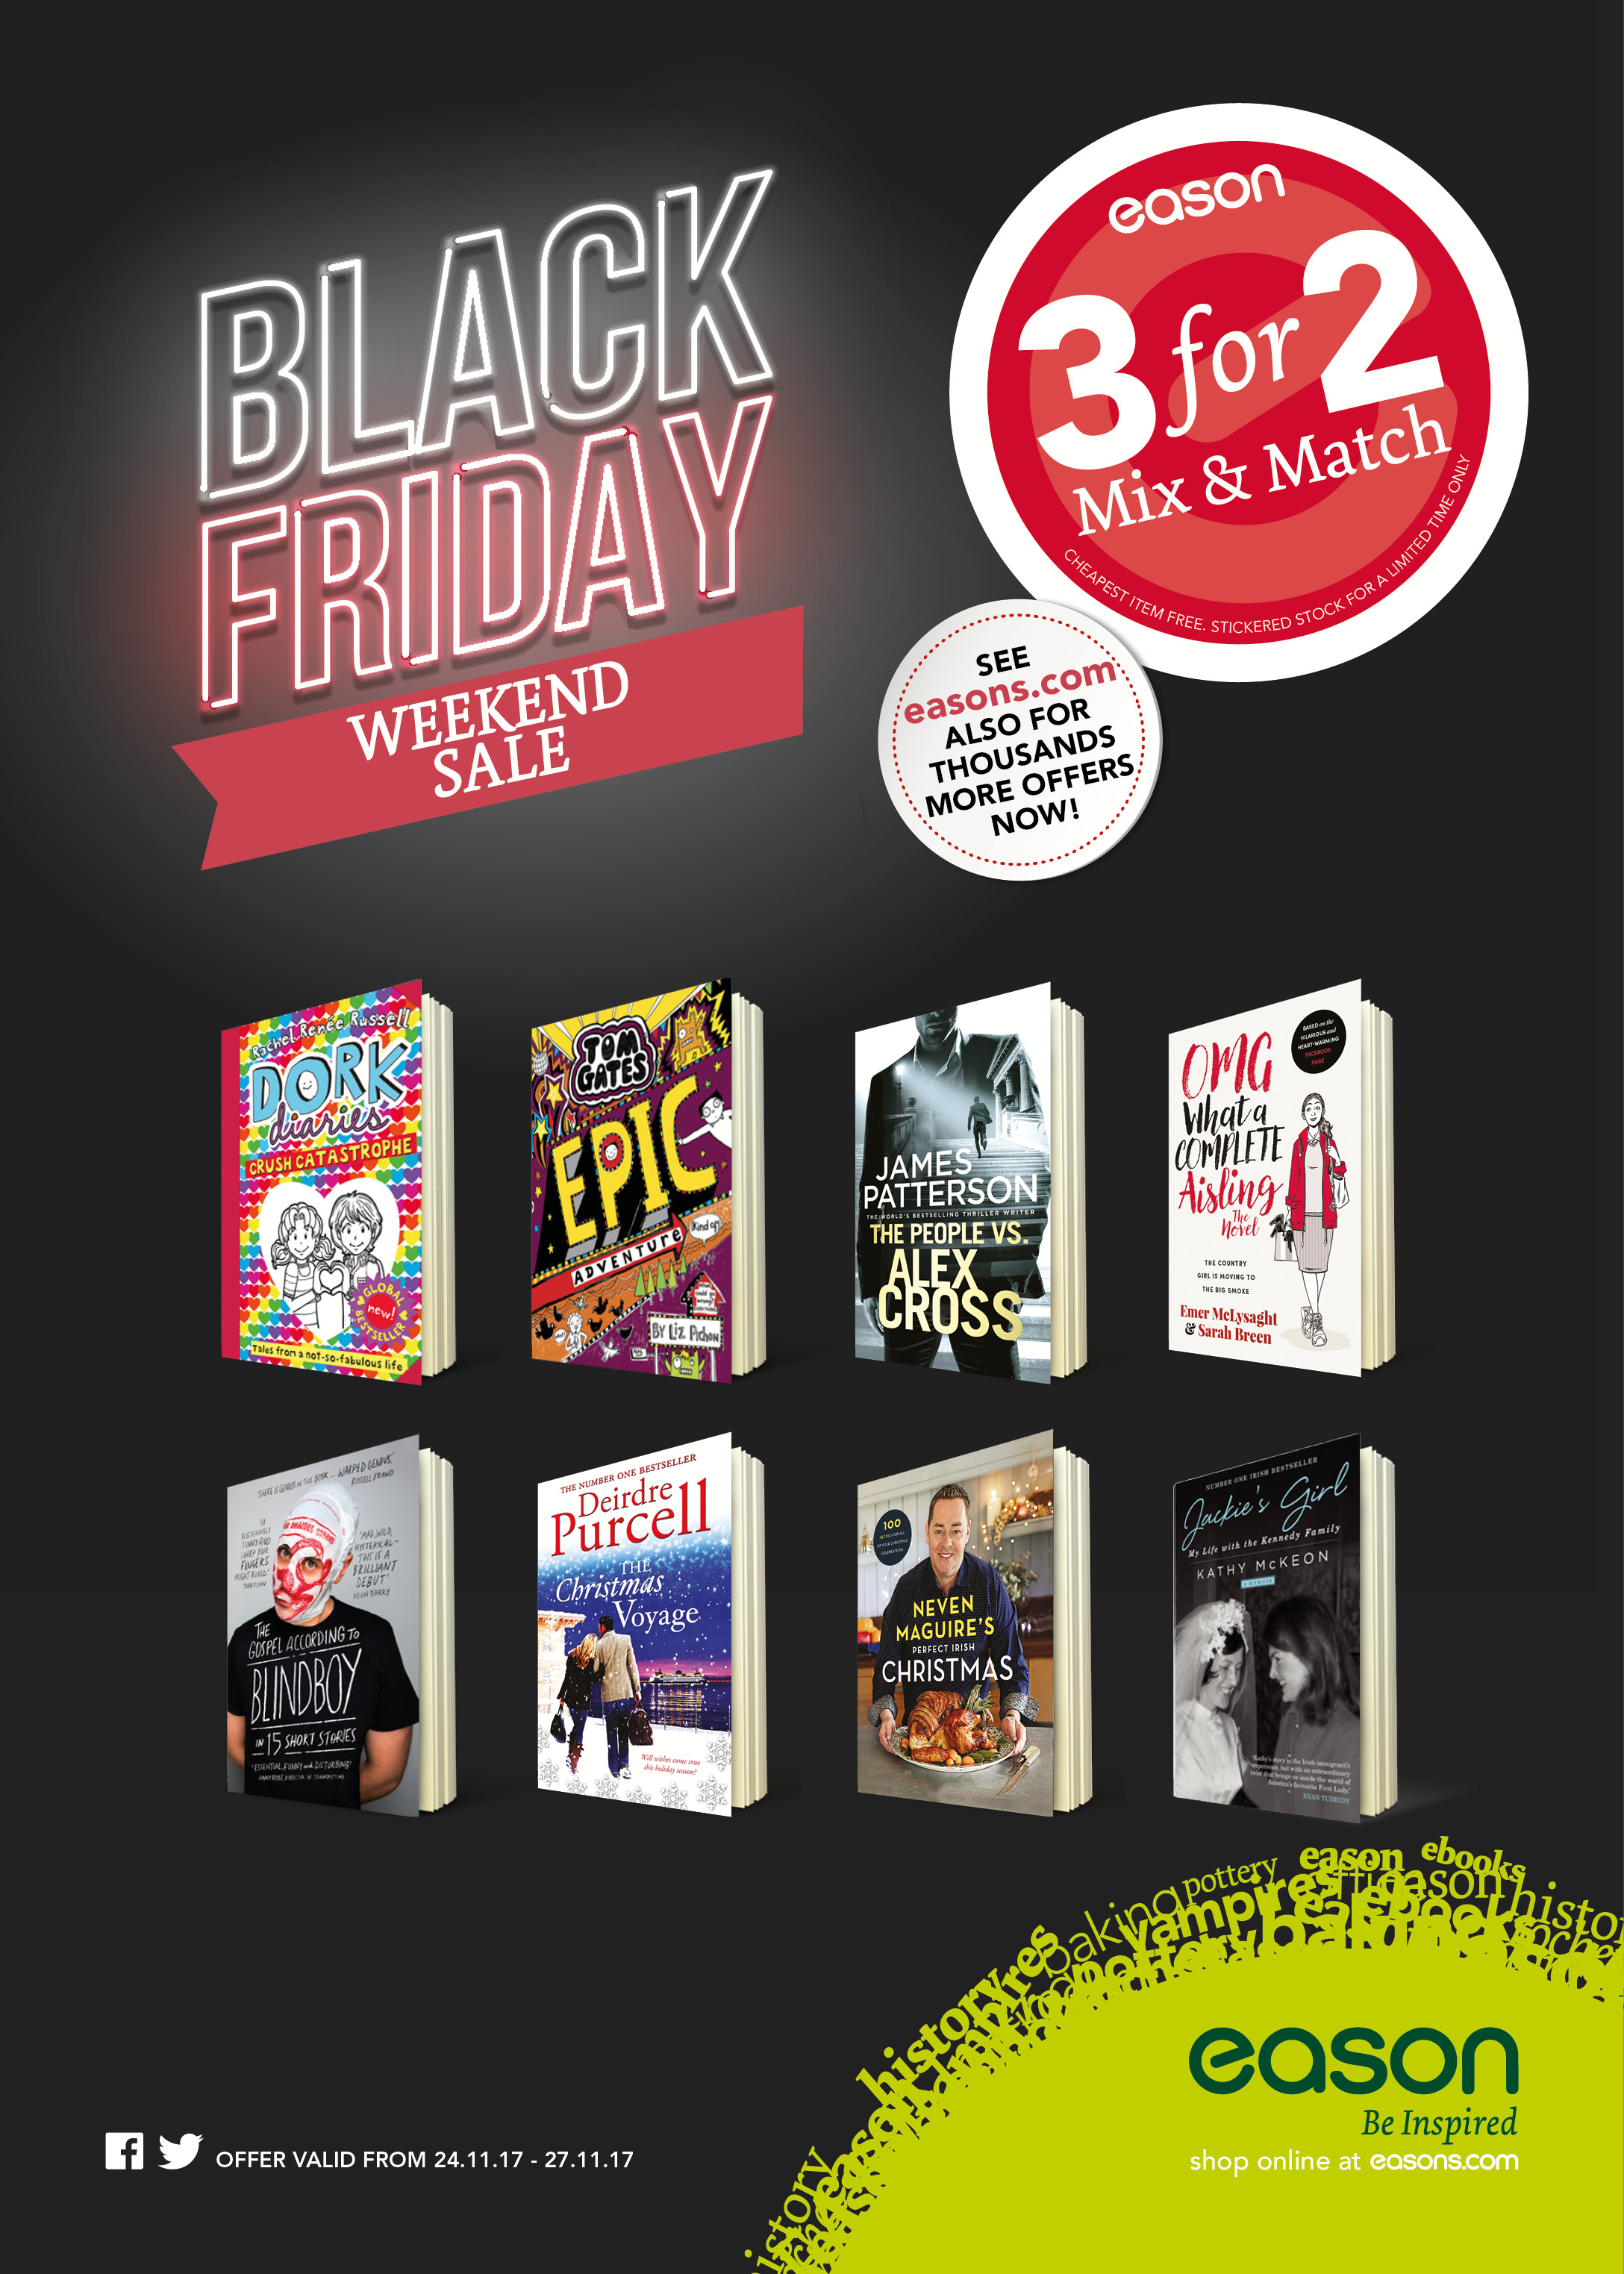 A3 3 for 2_Black Friday Poster